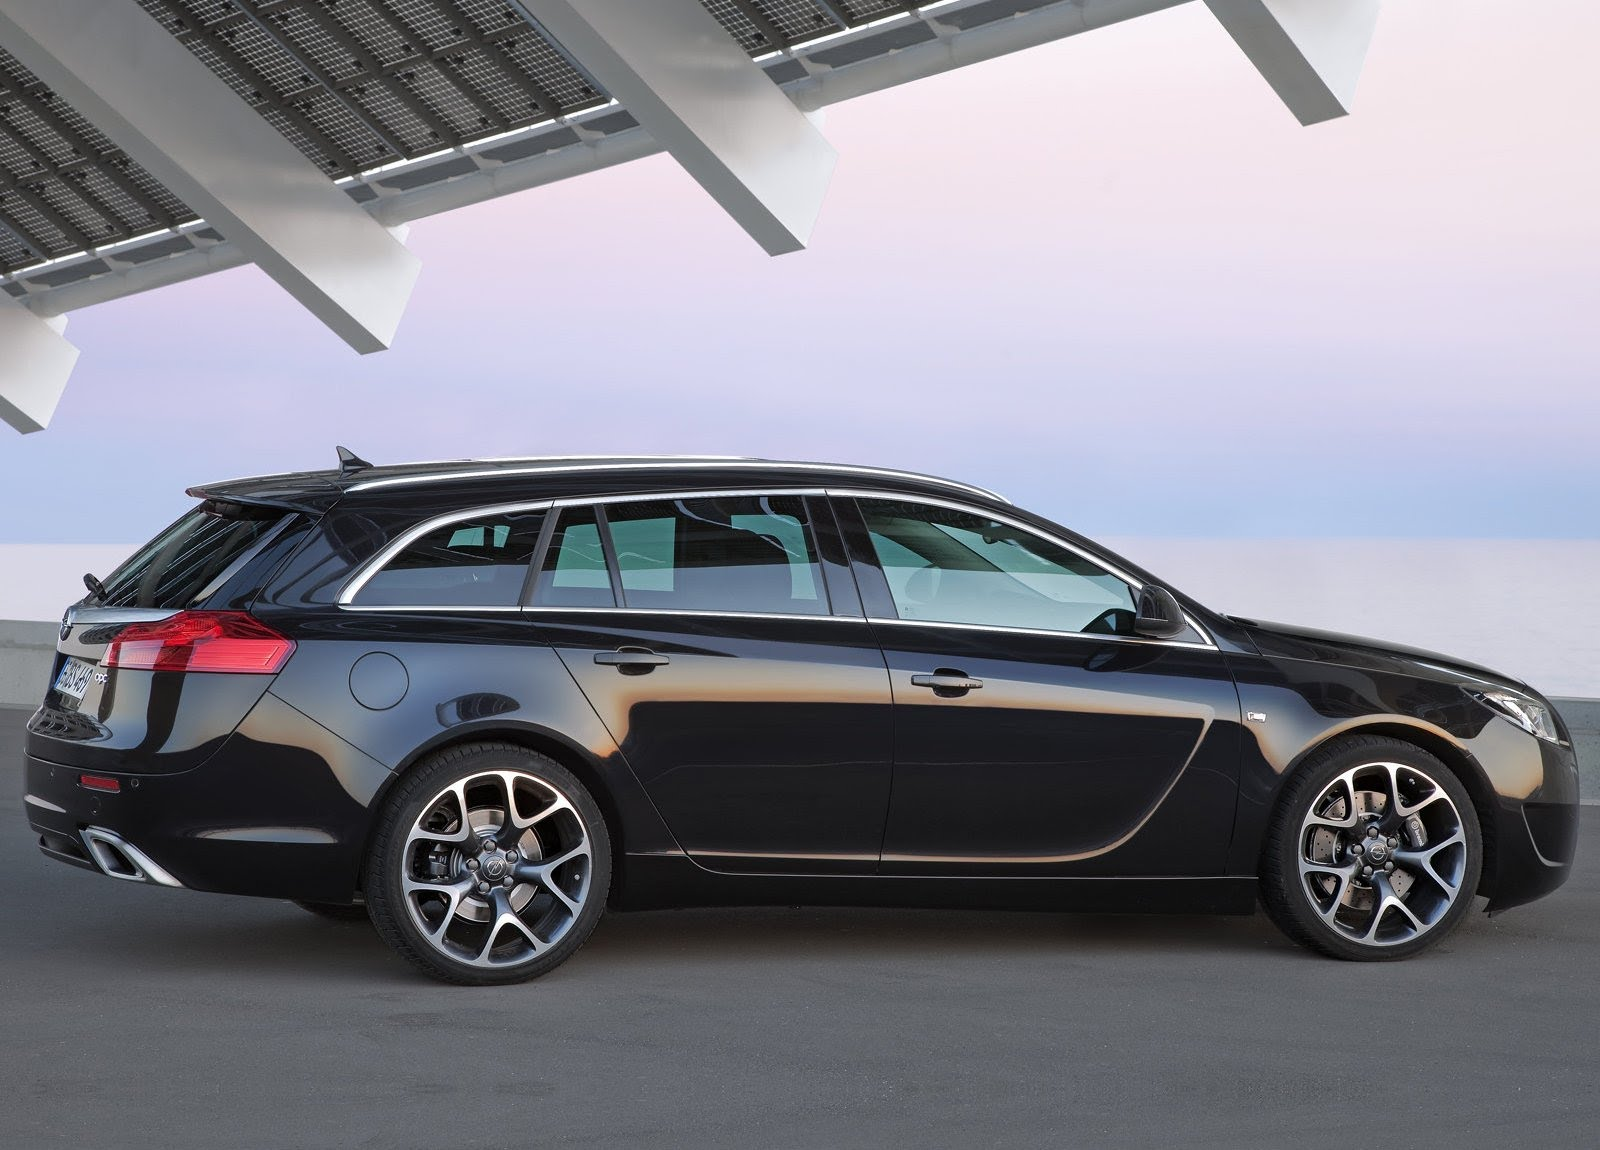 Now, if Buick would have pulled out all the stops and sold the V6-engined, all-wheel drive Opel Insignia OPC, they might have had a few more fans than they did when they gave us a 4-cylinder, front-wheel drive Regal GS.